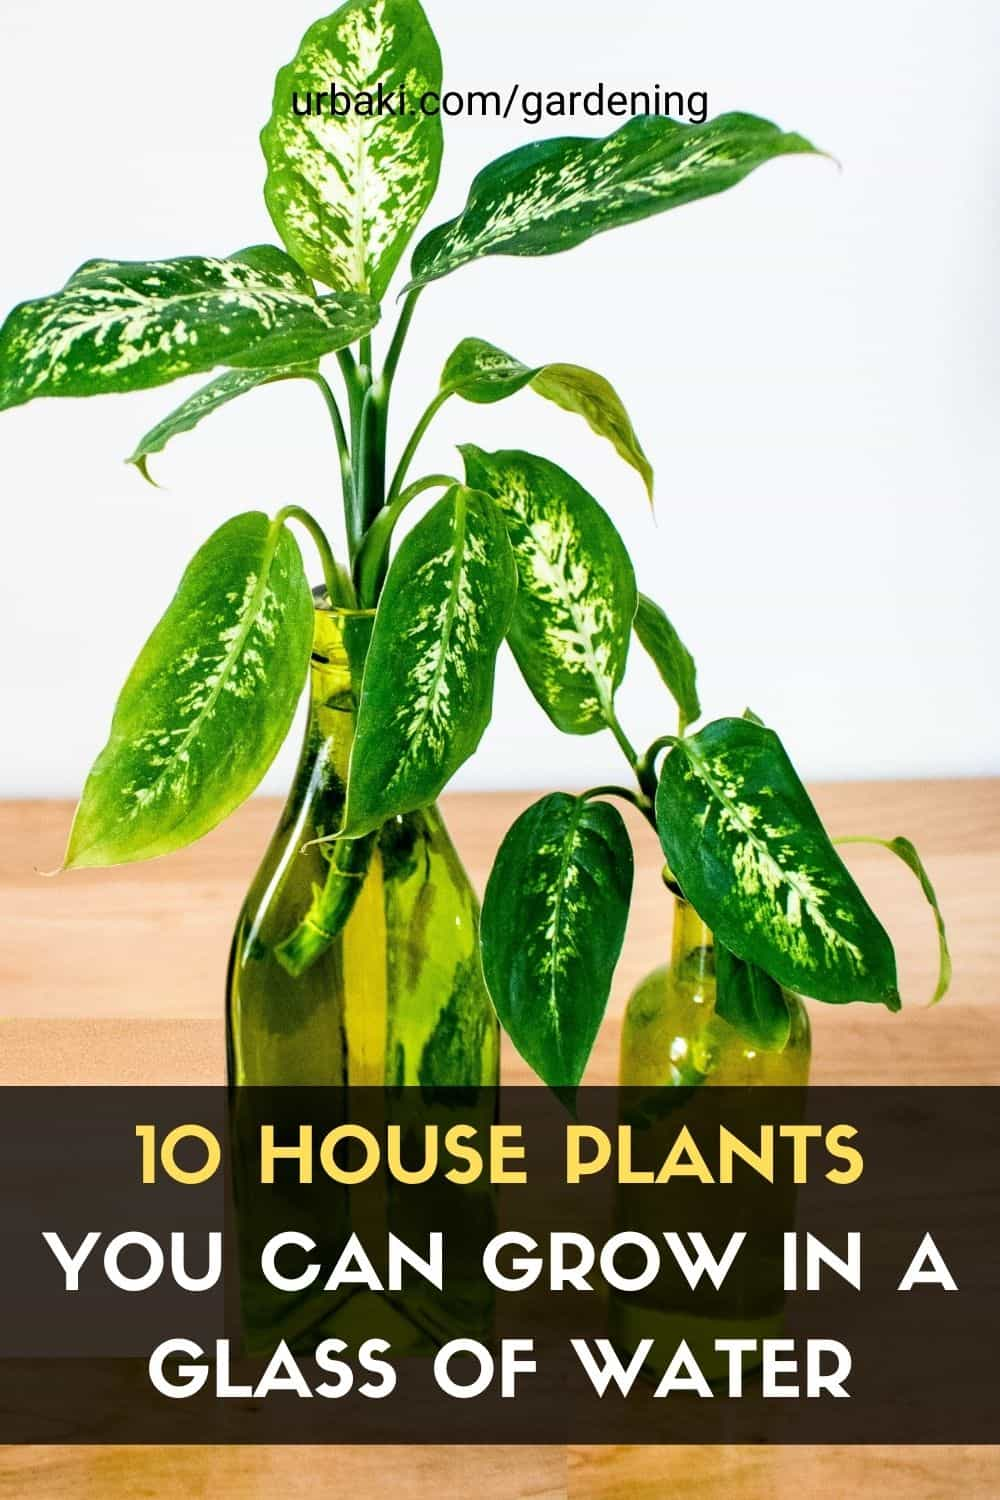 House Plants You Can Grow in a Glass of Water